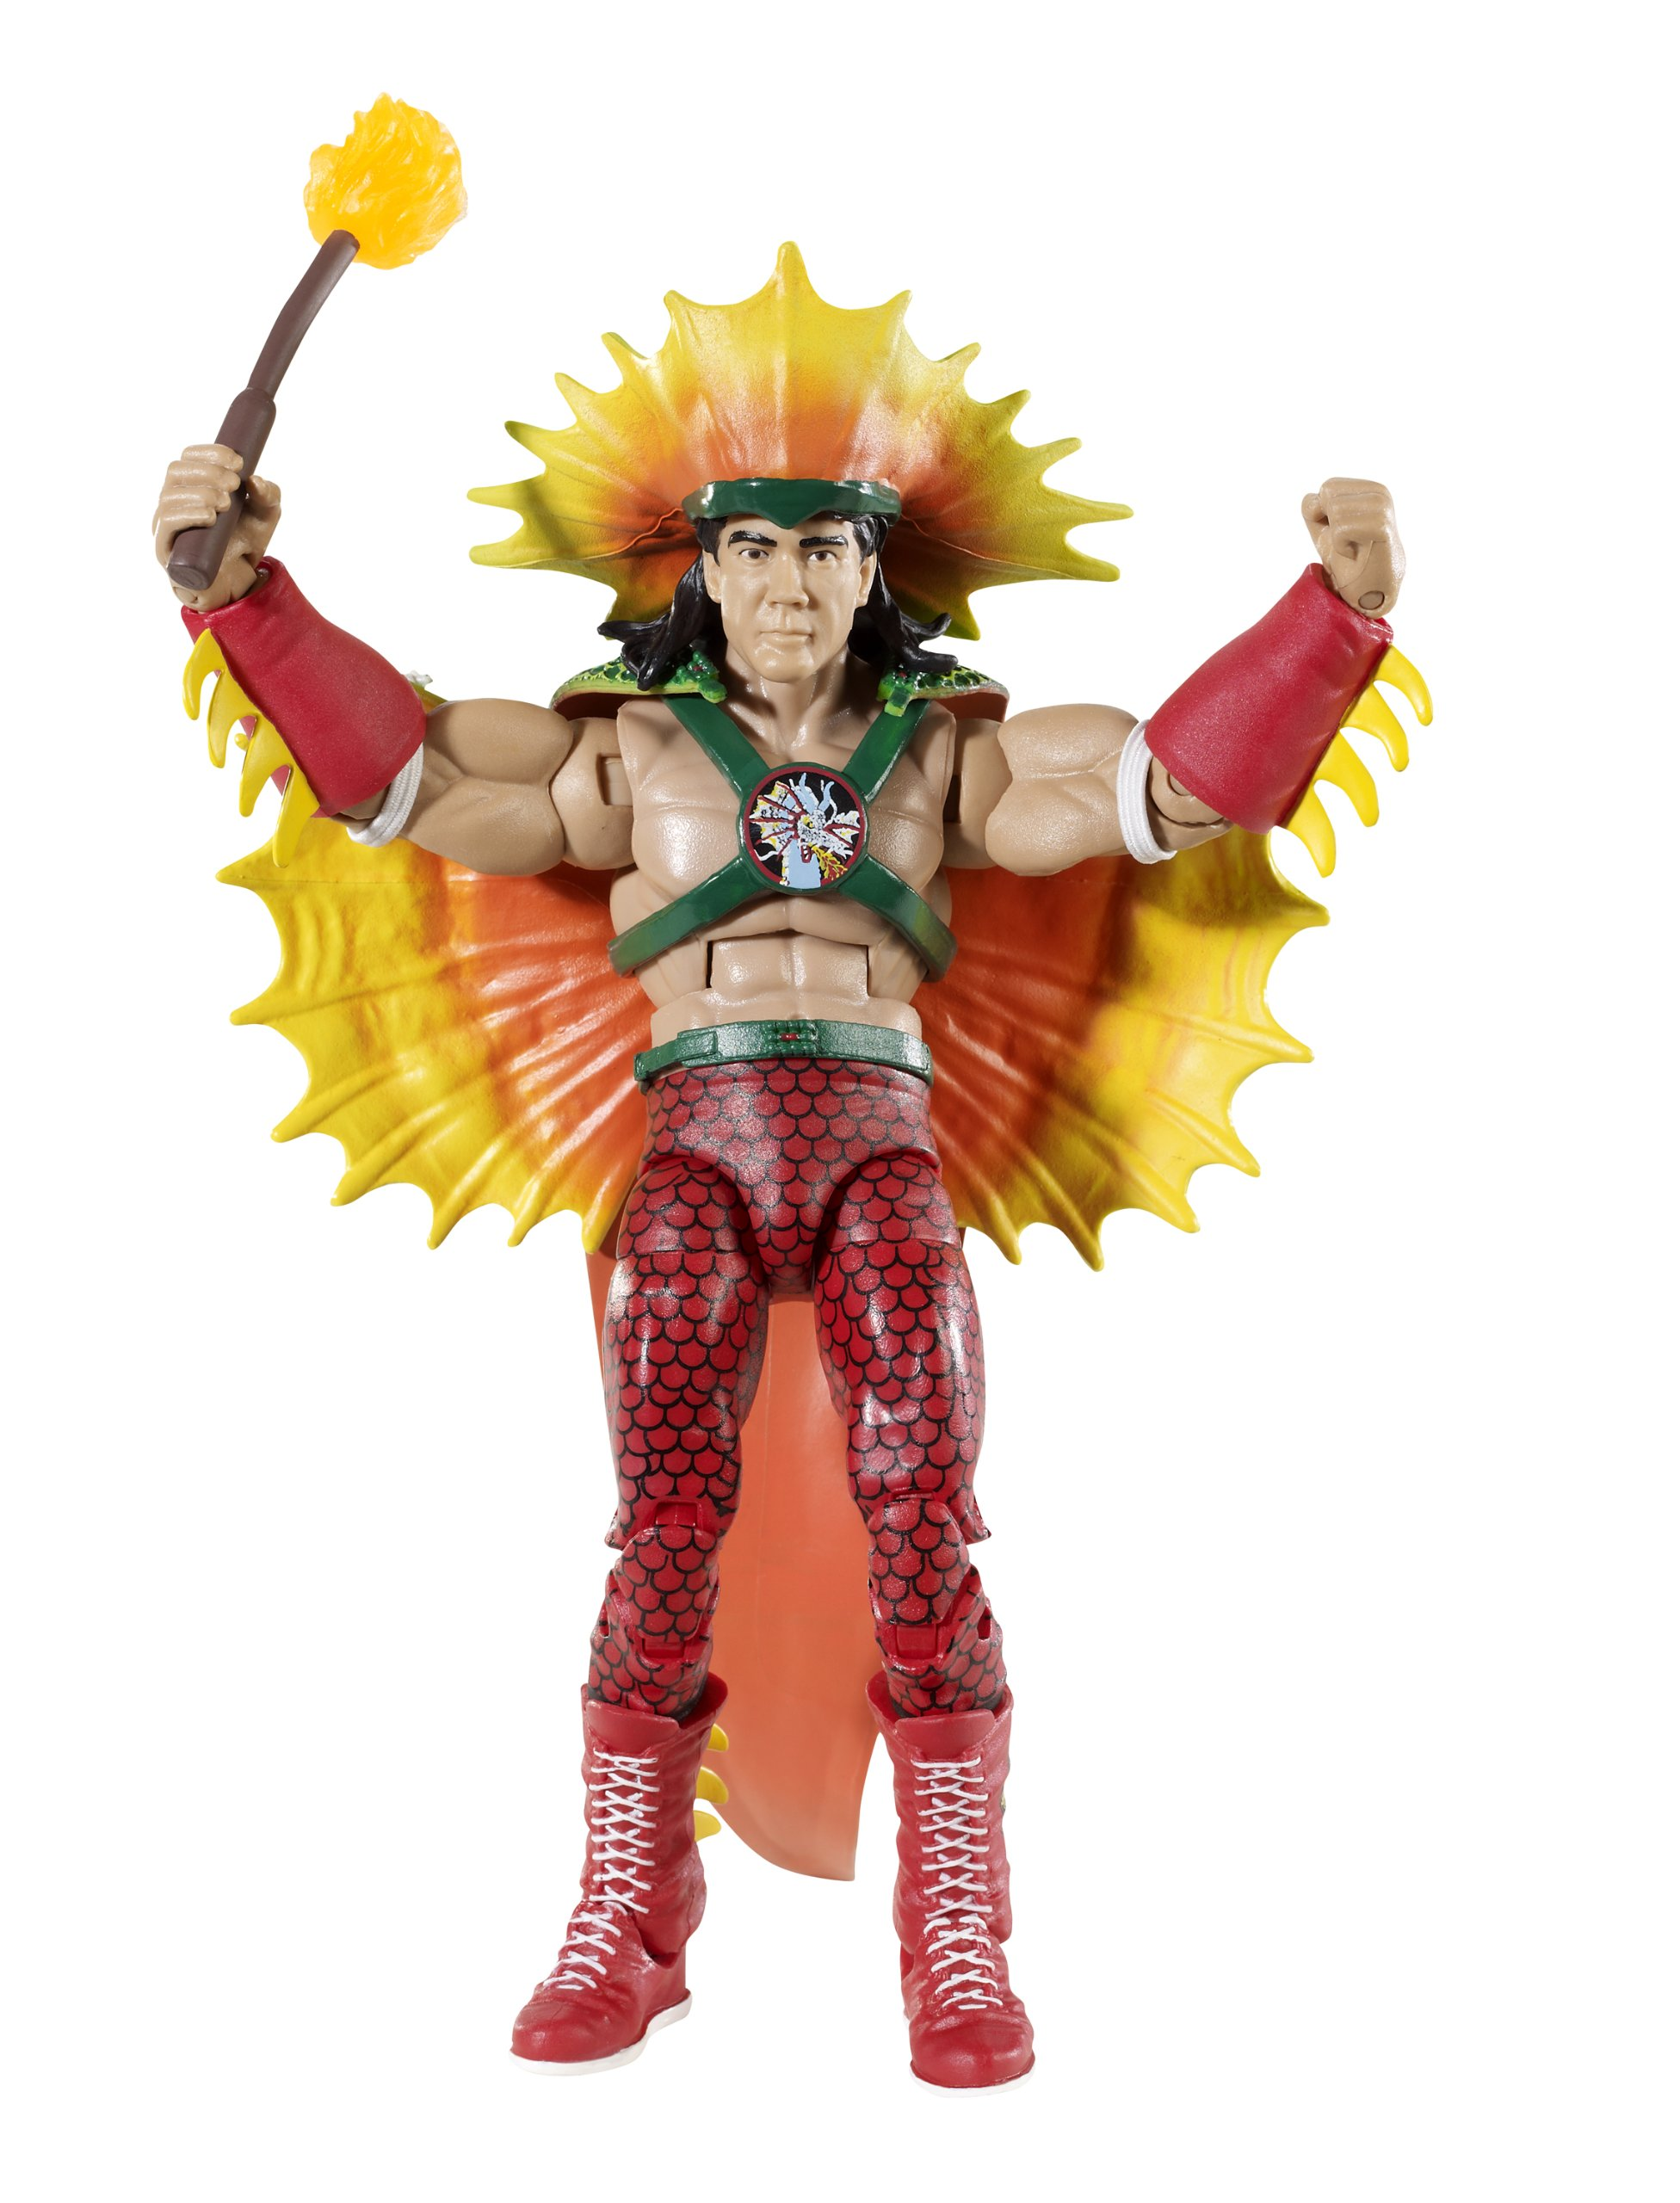 WWE Defining Moments Ricky Steamboat - Dragon Outfit Collector Figure Series #3 by WWE